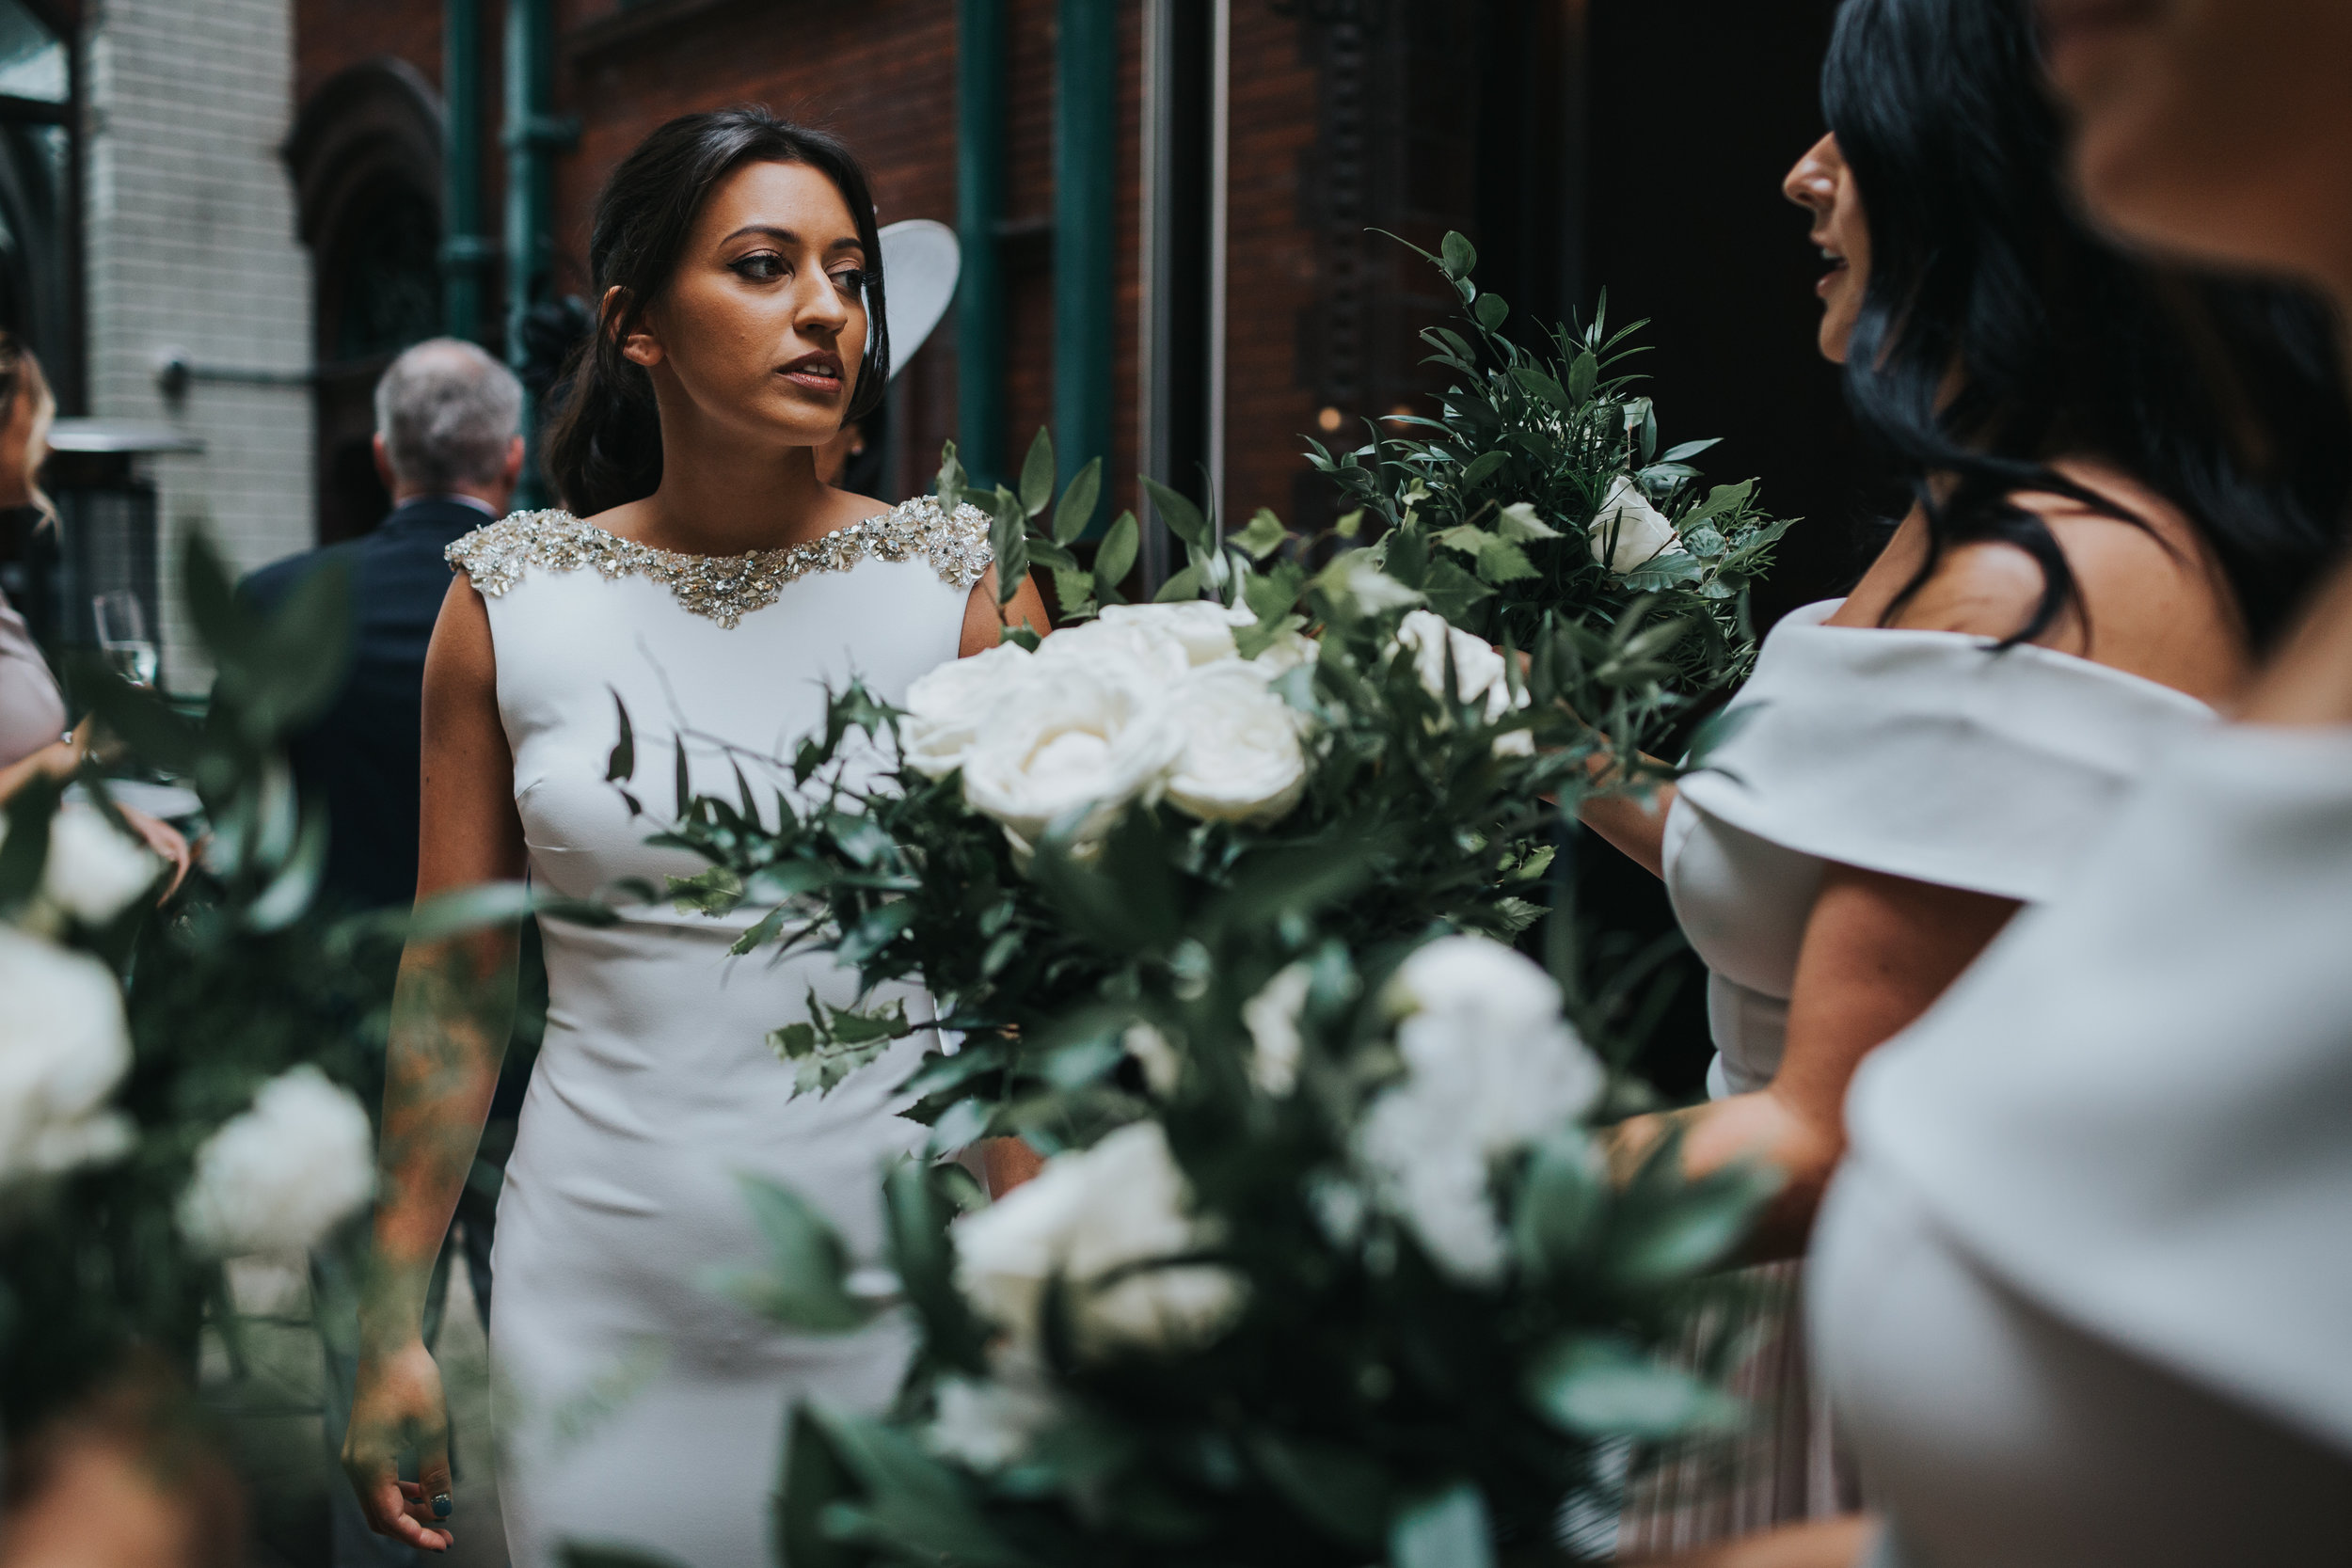 The bride leaves her hotel to get to the church, surrounded by her bridesmaids beautiful white and green bouquets.